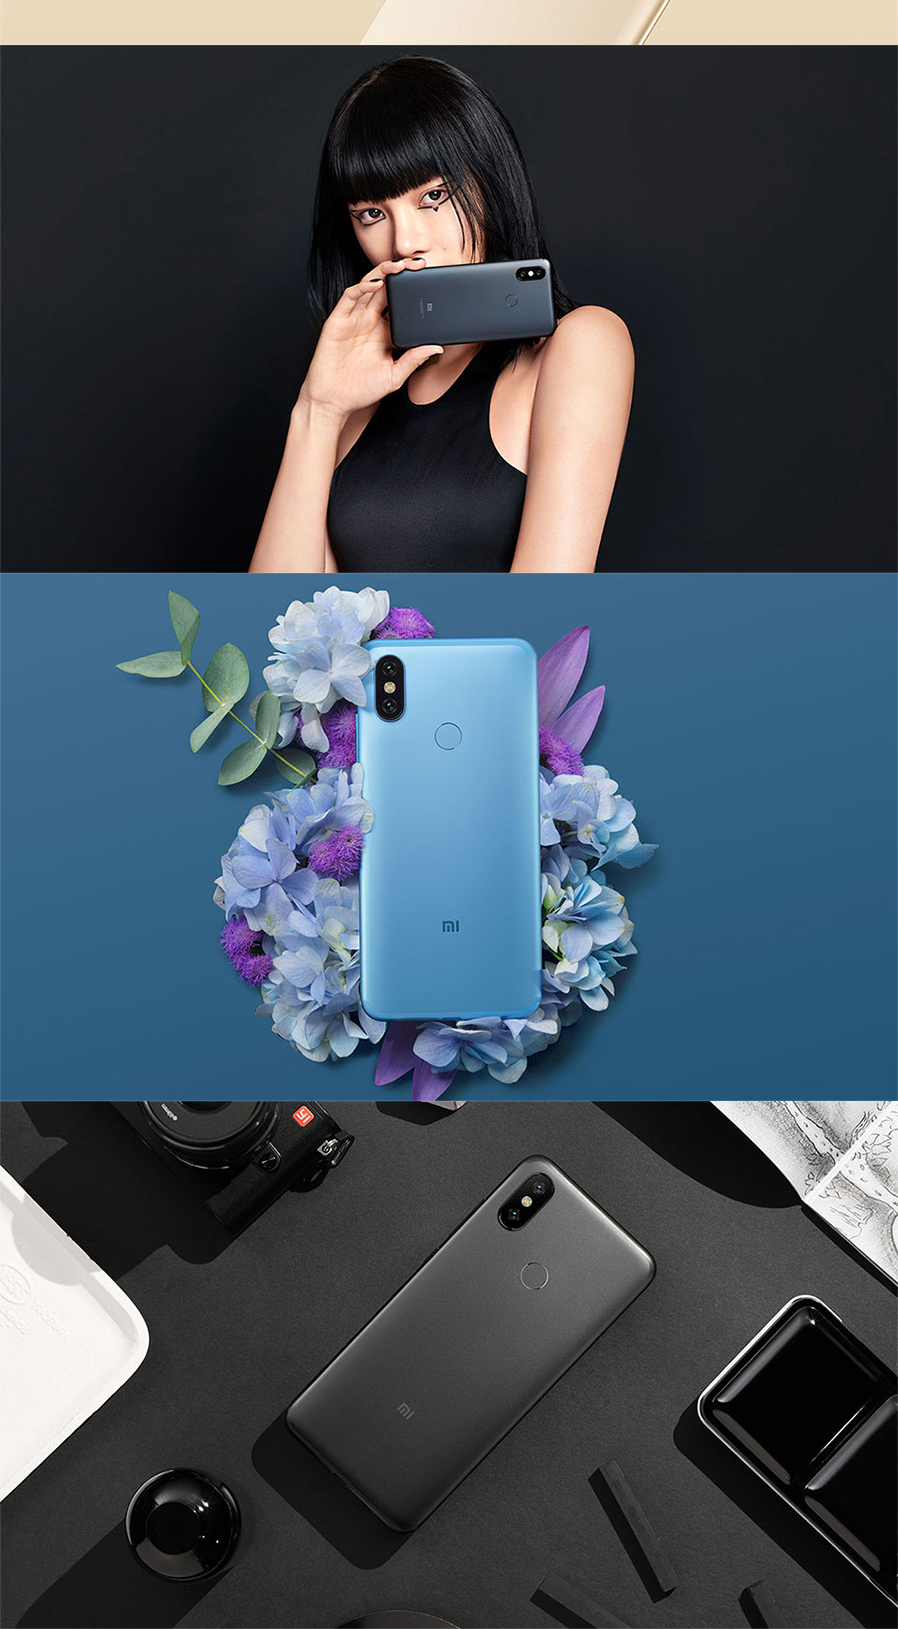 Xiaomi Mi Mix 2 Premium Kabel Type-c Usb Jeans 1m+schnell Power Ladegerät Led Easy To Use Cell Phones & Accessories Cell Phone & Smartphone Parts